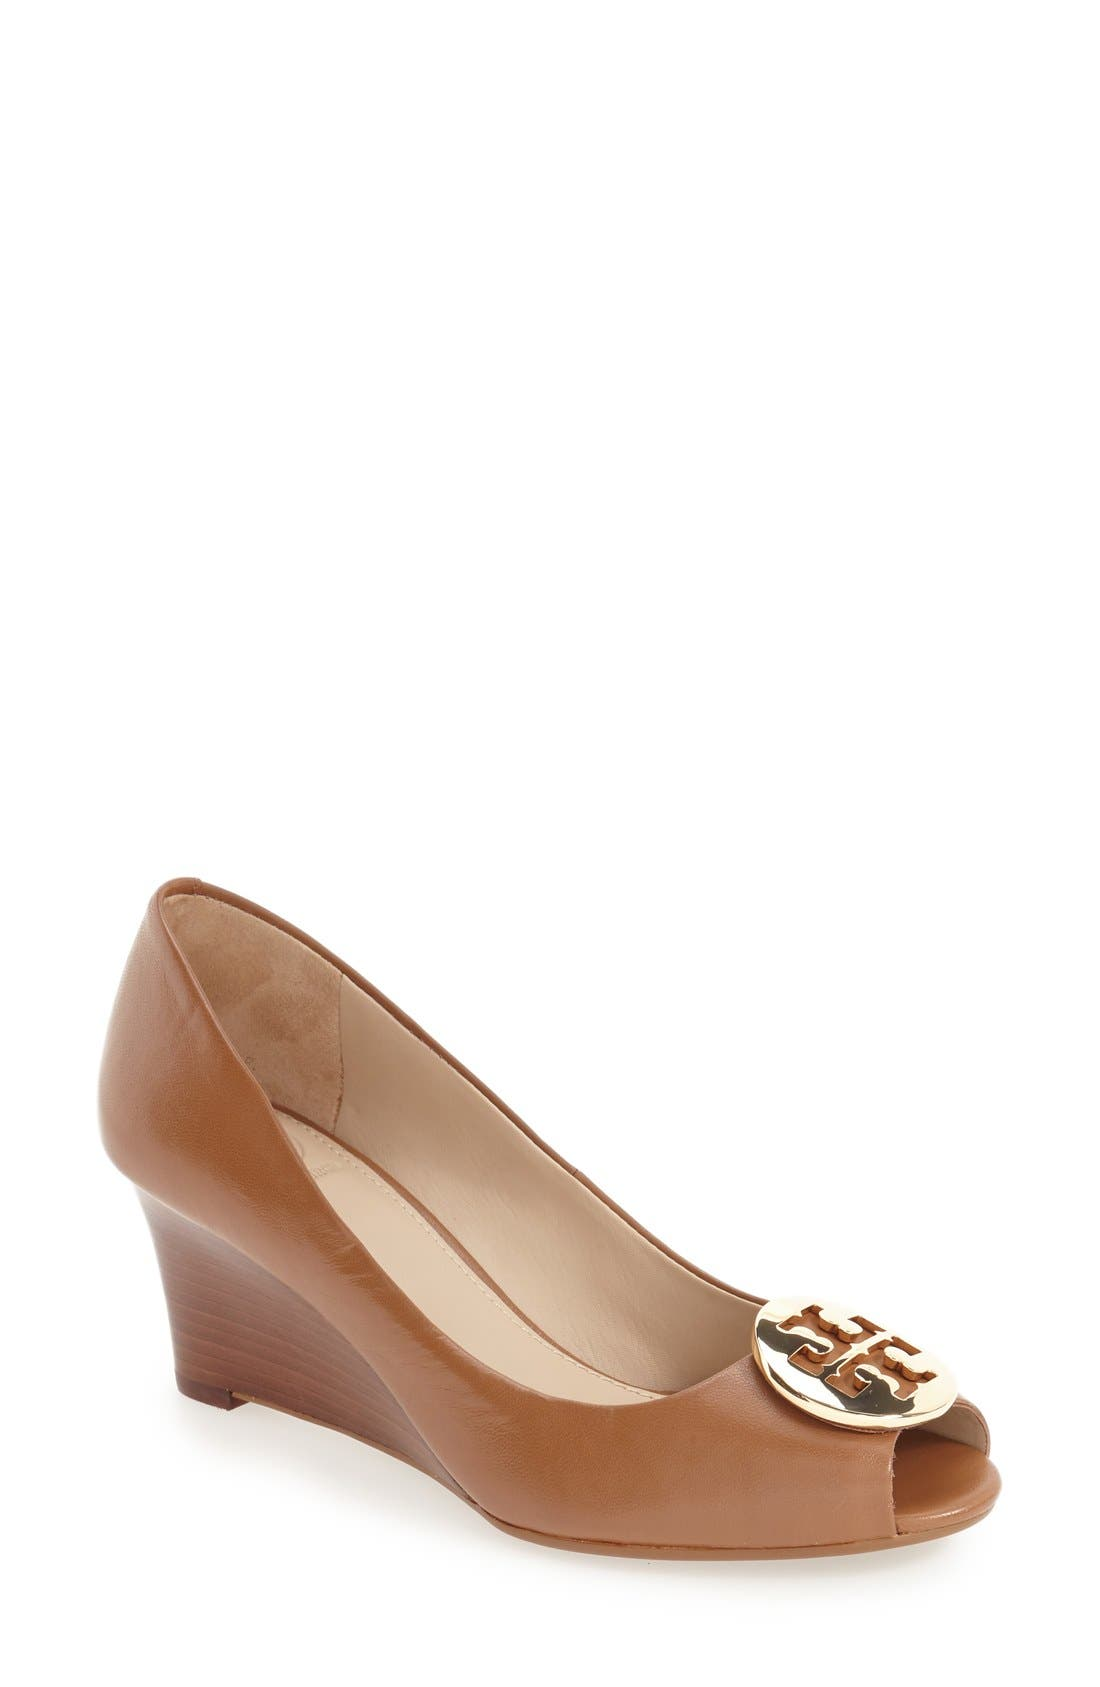 Main Image - Tory Burch 'Kara' Wedge Pump (Women)